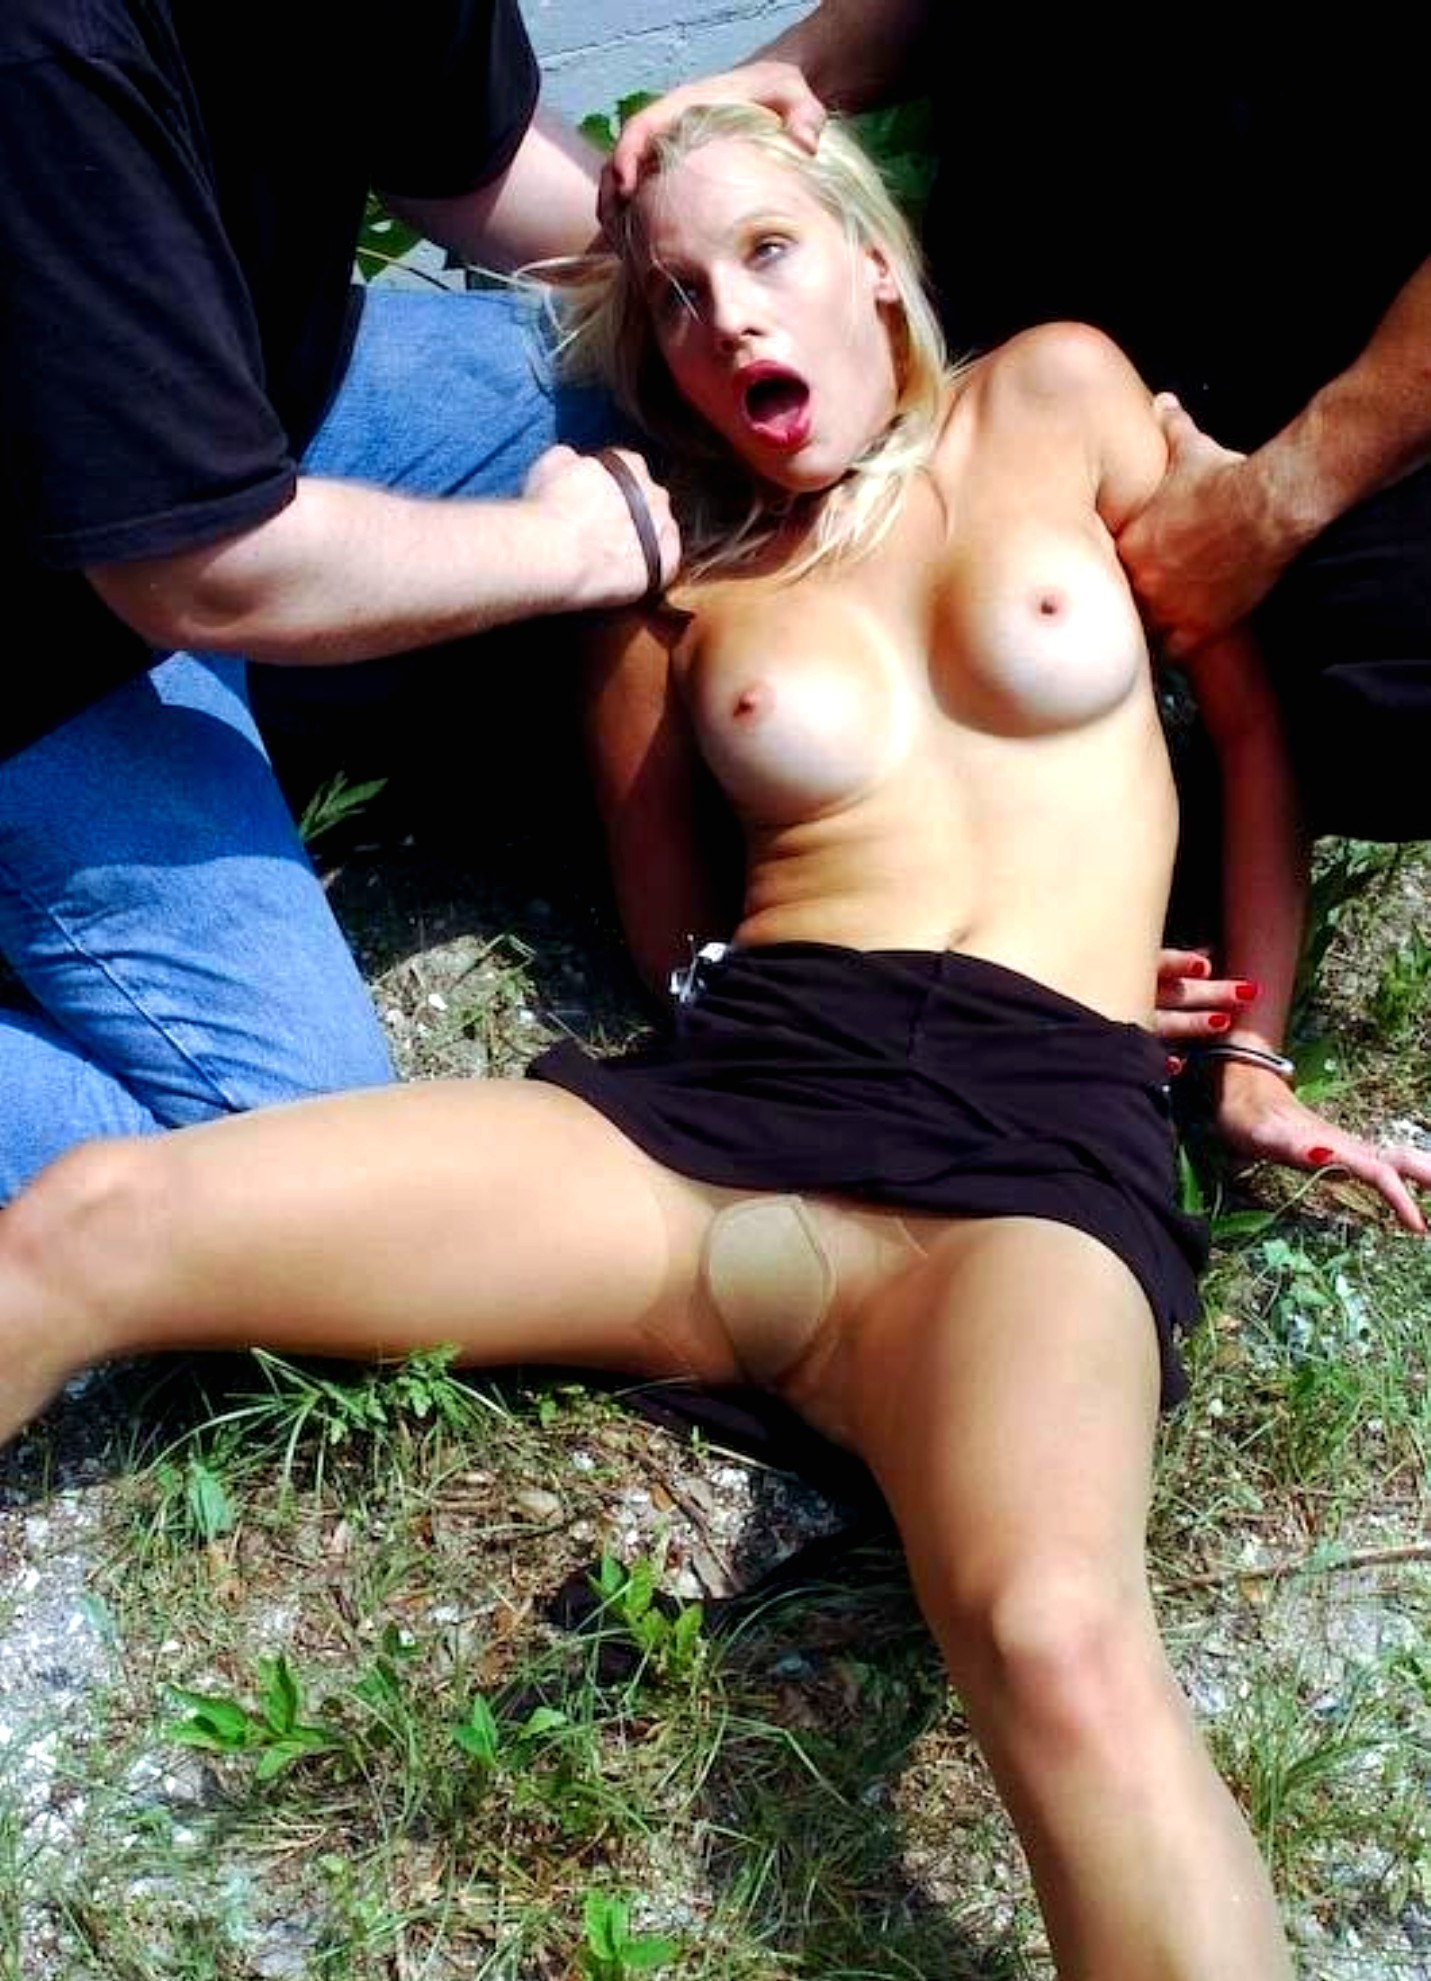 Fantasy abuse sex pron galleries